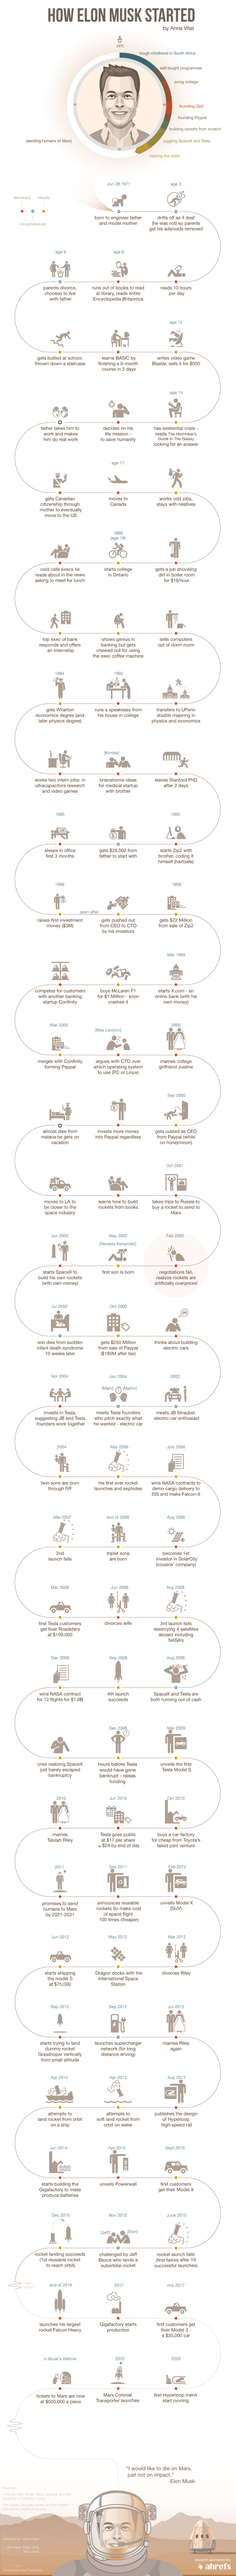 How Elon Musk Started  Infographic  Adioma Blog